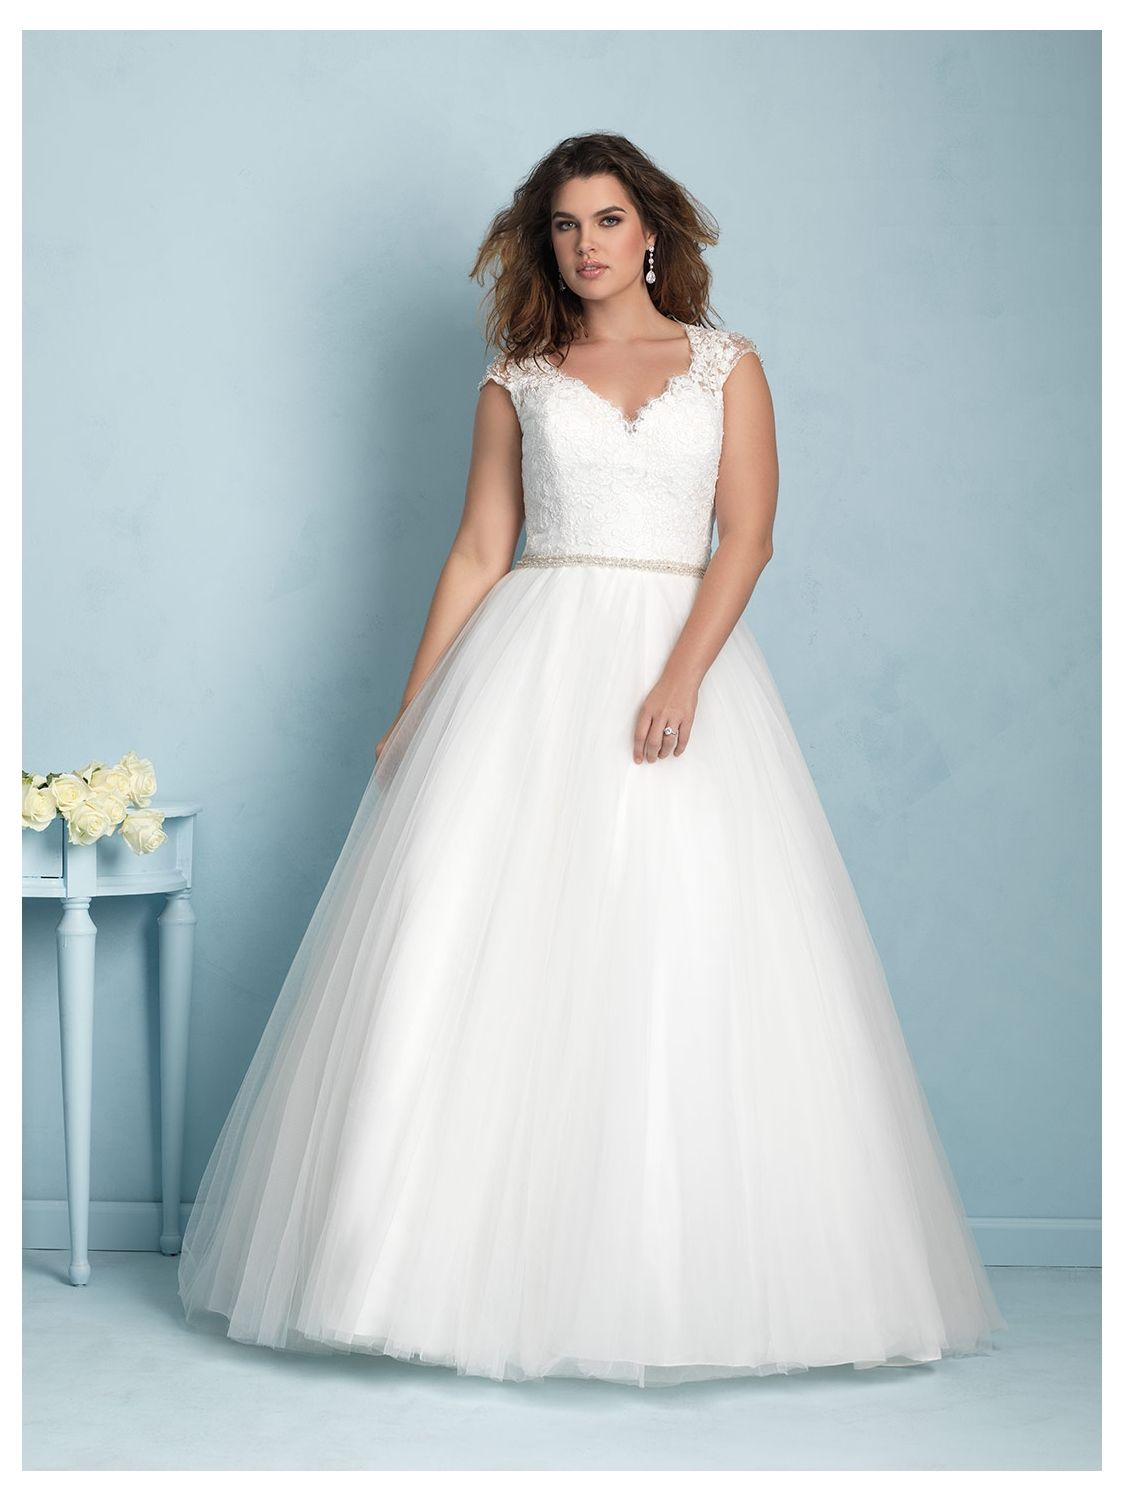 Allure Women Wedding Dress Style W350 | House of Brides | Here Comes ...